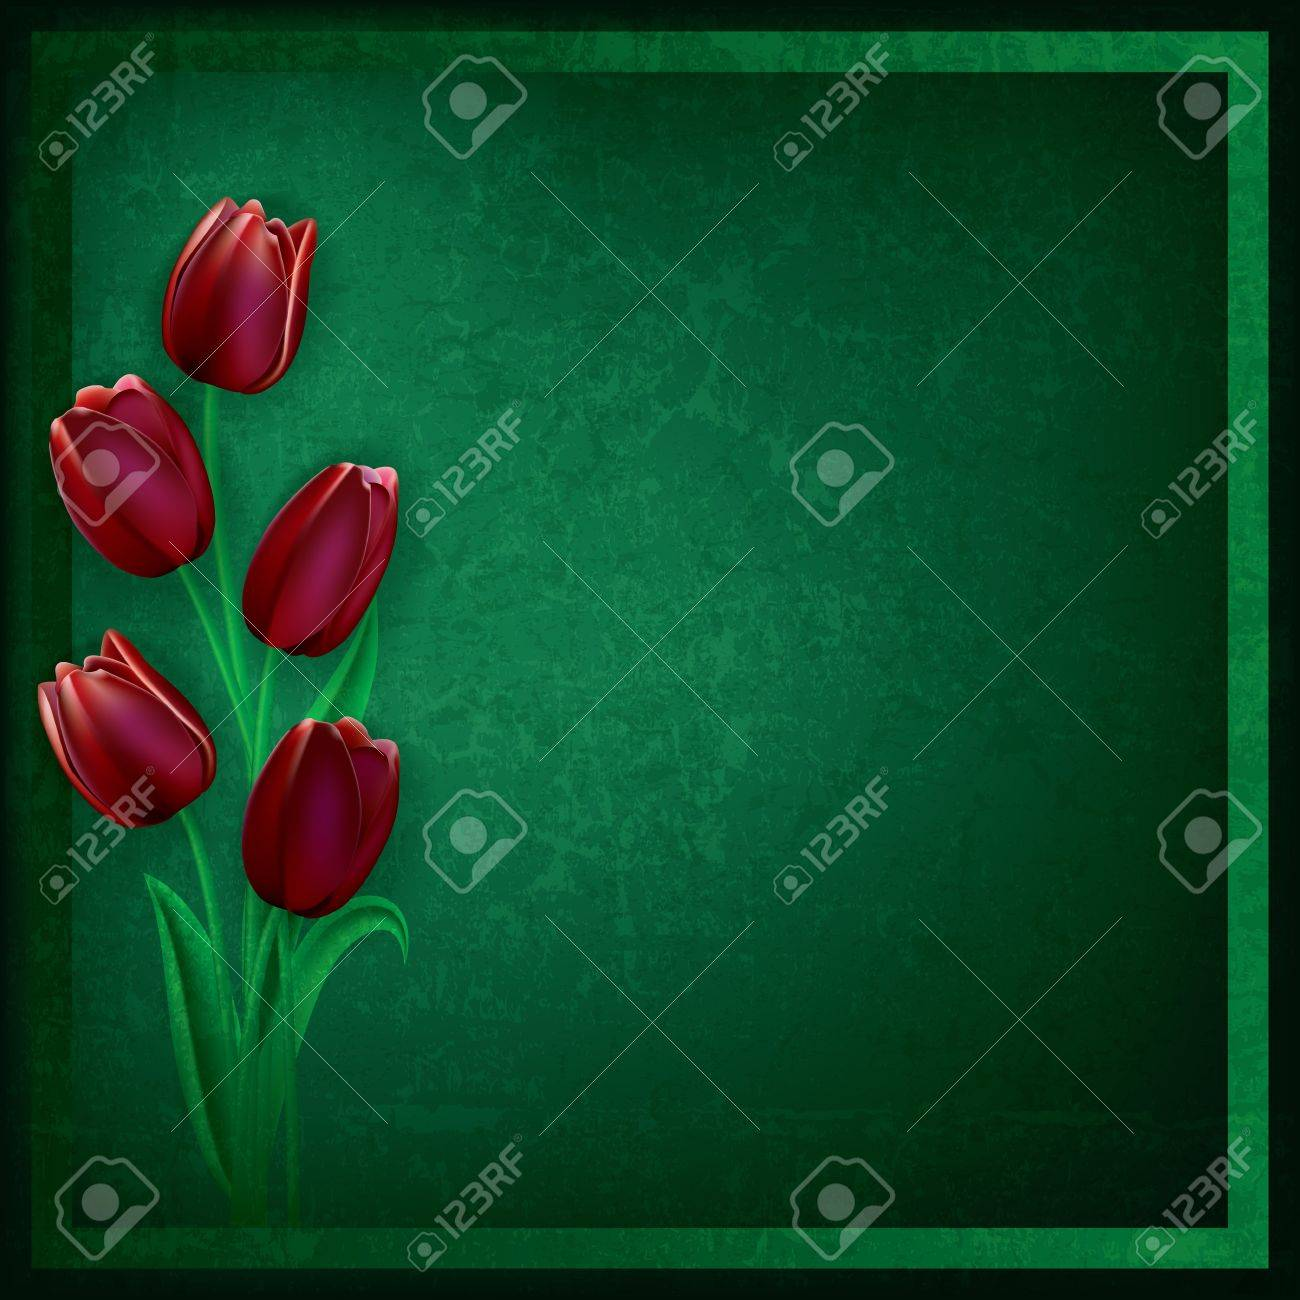 abstract grunge green background with red tulips Stock Vector - 12837569